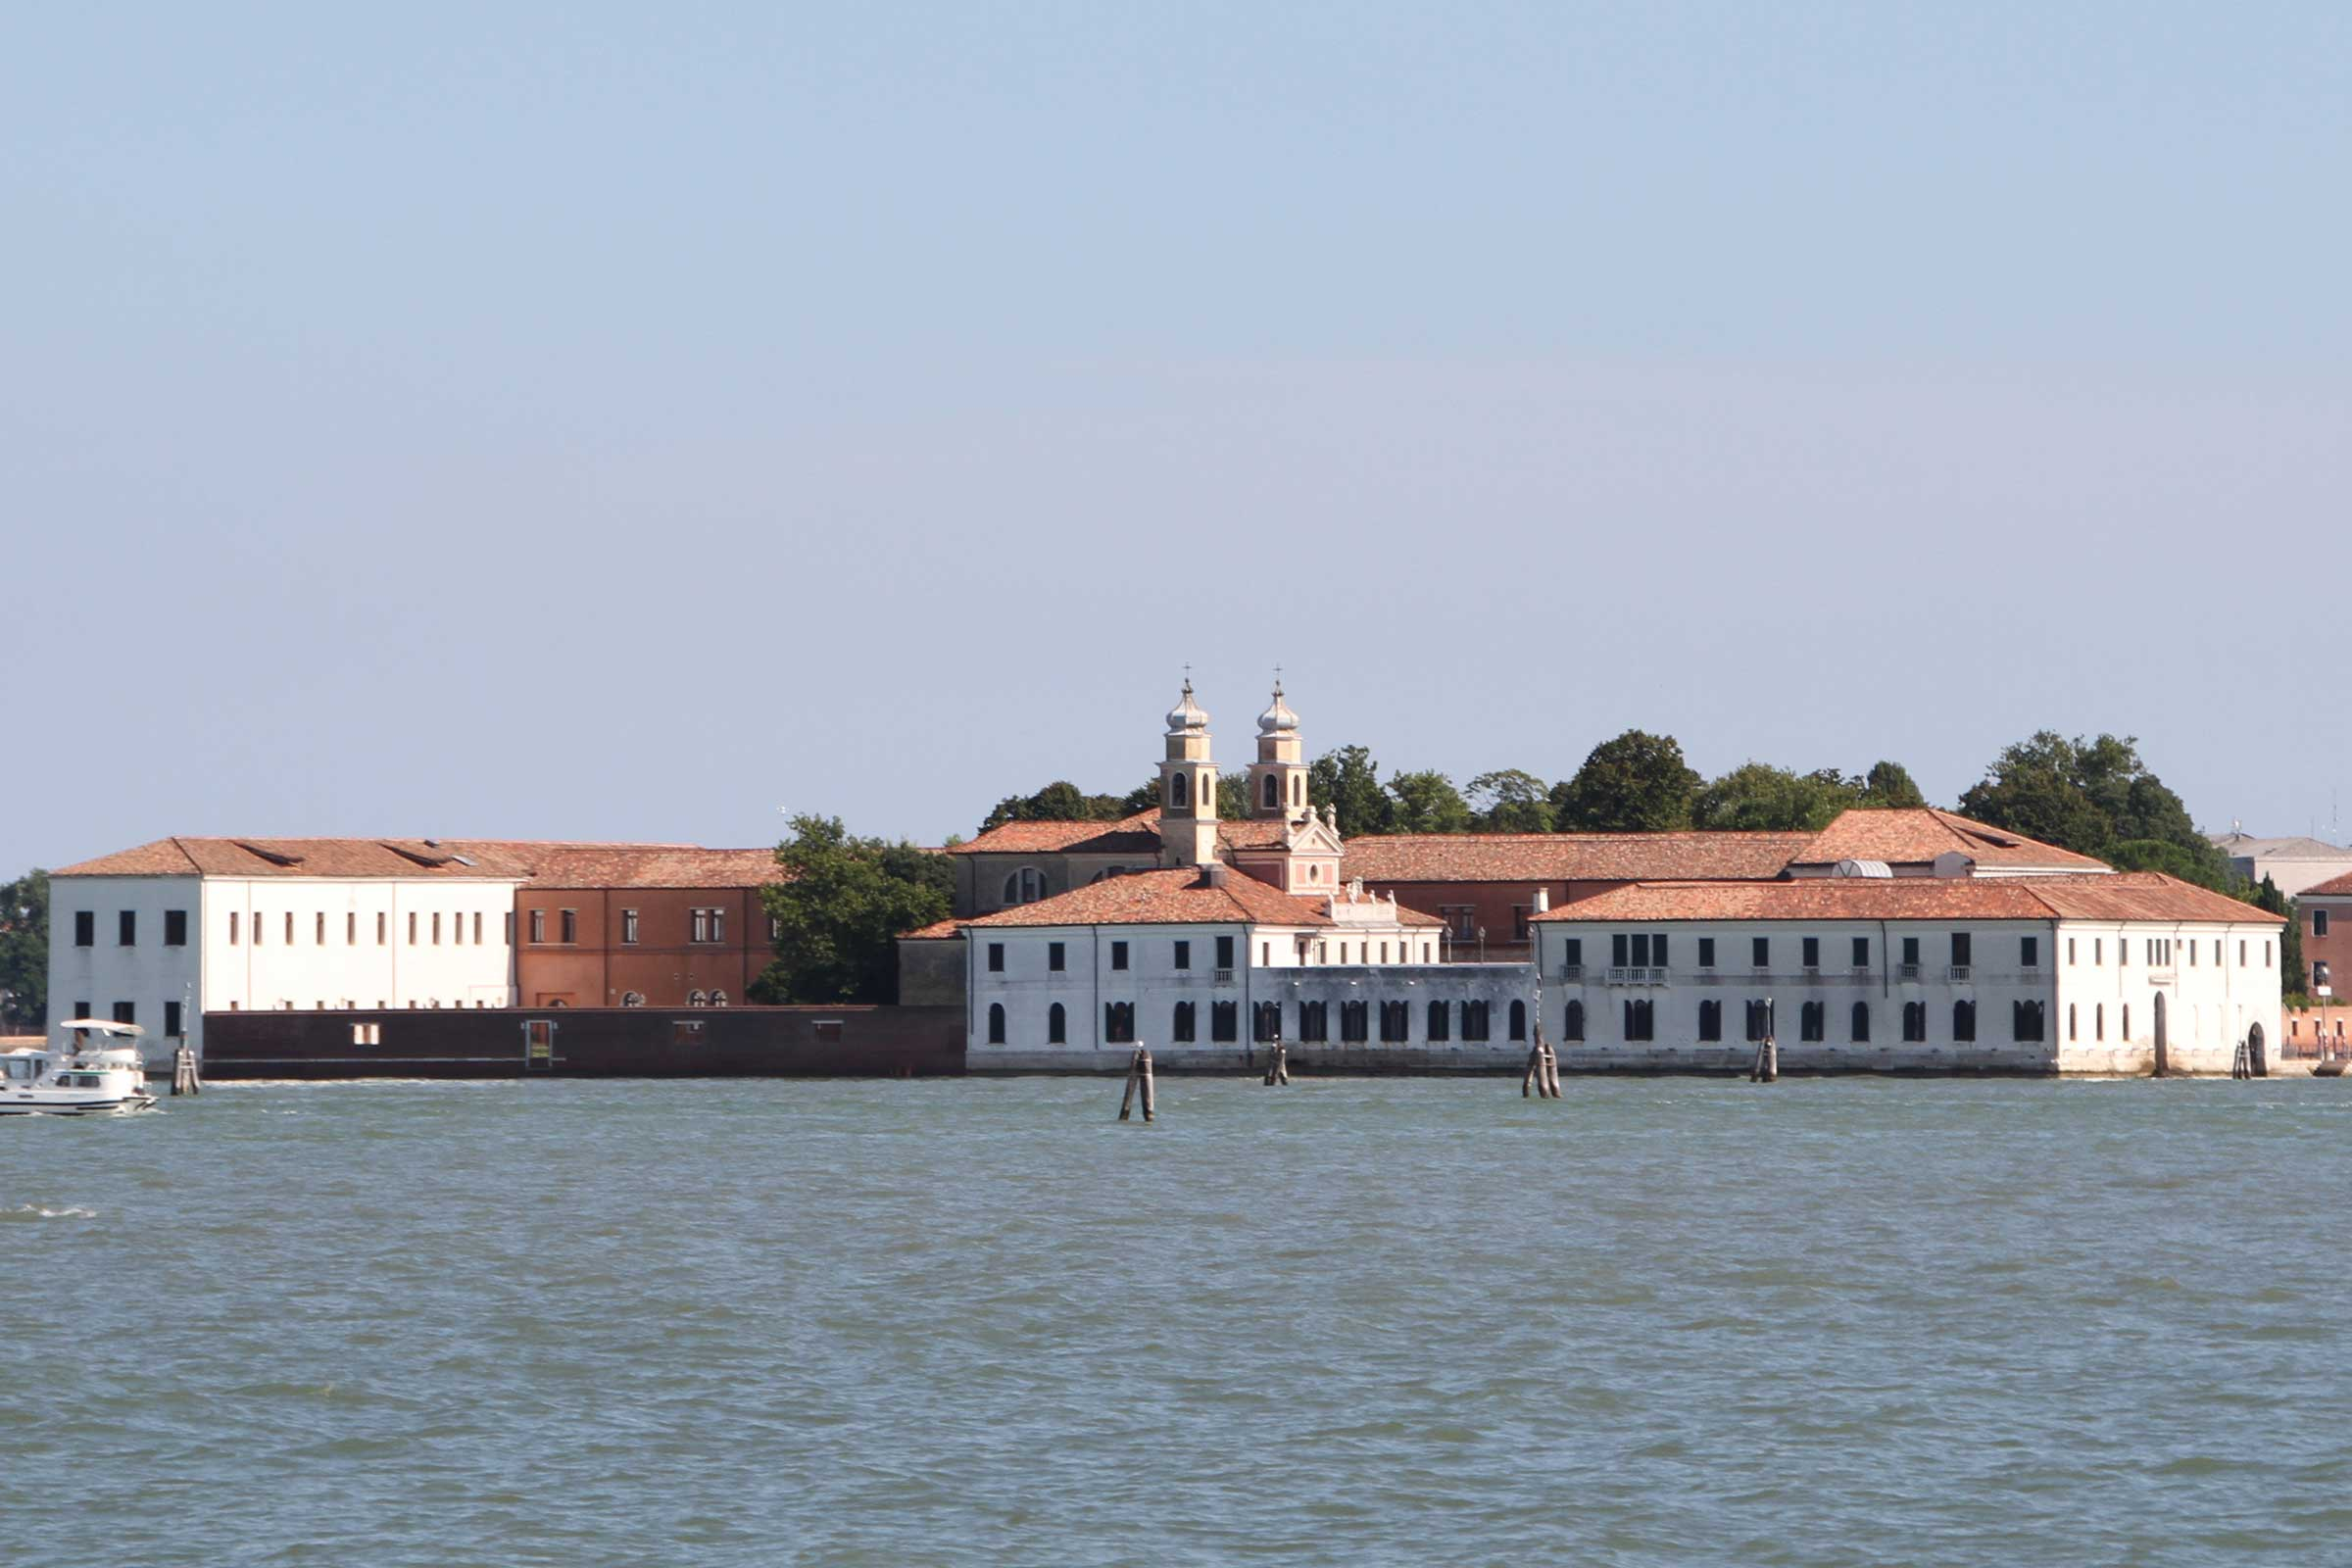 Image-of-the-San-Servolo-Island-in-Venice,-Italy-©-Erlend-Bjørtvedt-(CC-BY-SA).jpg